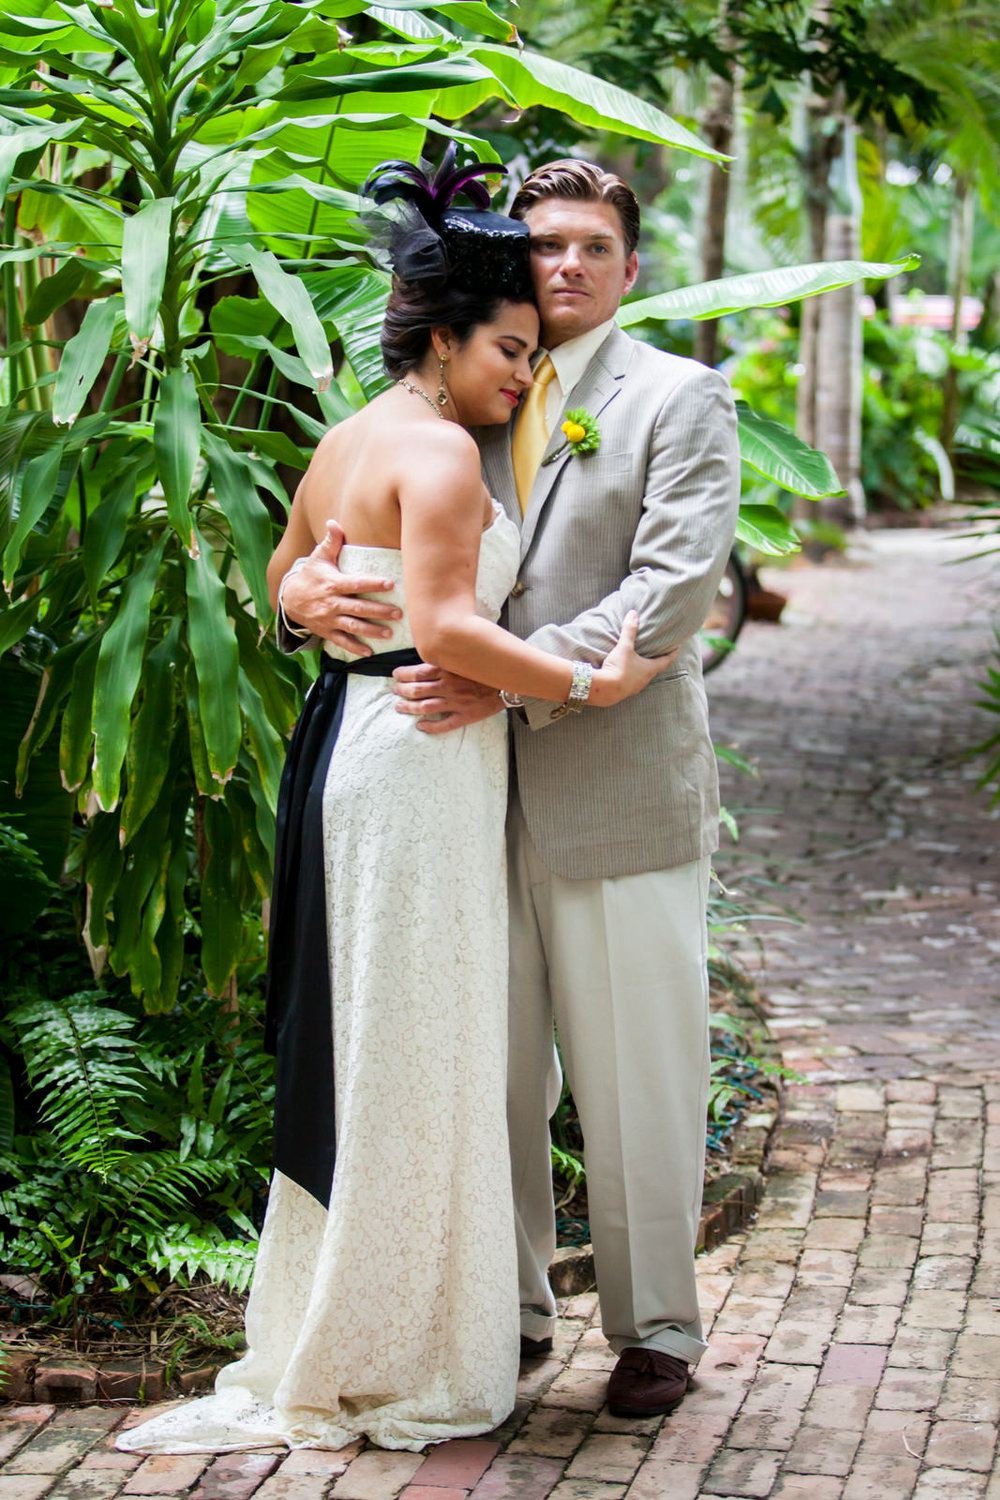 Fall-Inspired-Wedding-Styled-Shoot-Old-Town-Manor-Key-West09.jpg